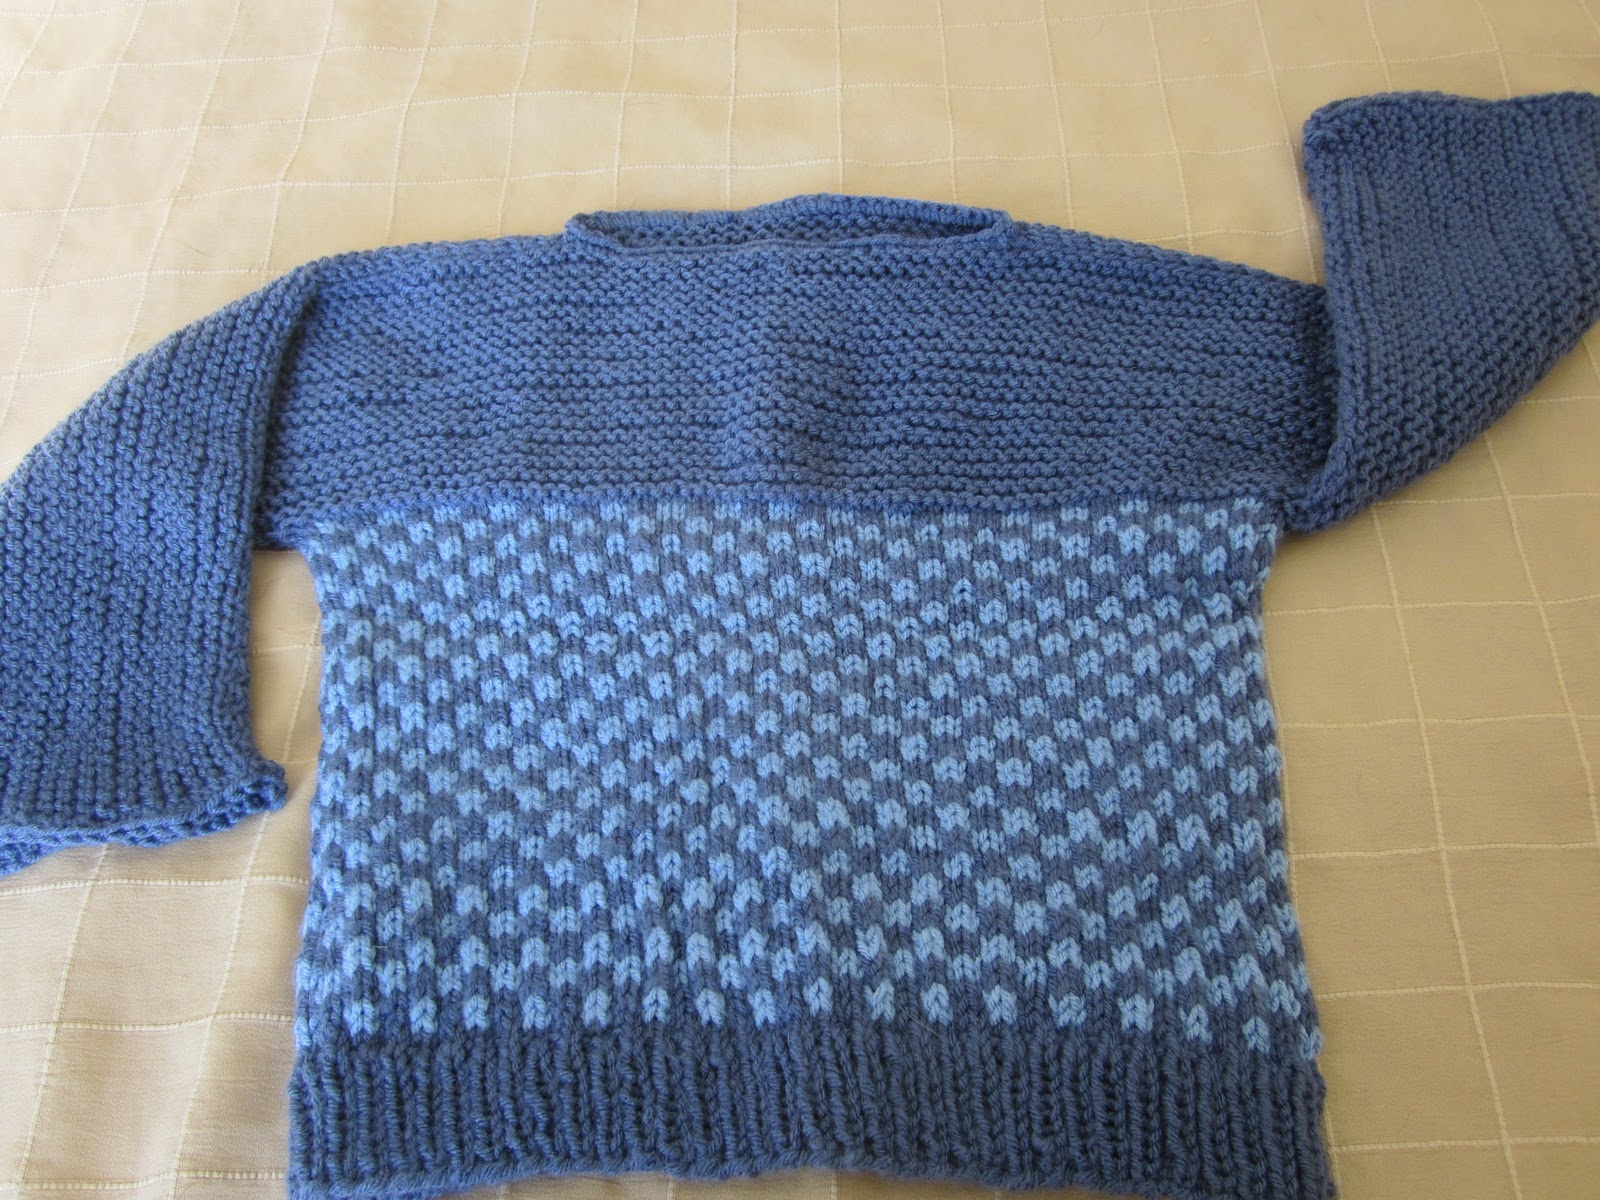 Fun, free knitting patterns to let you go knitting crazy. Choose from sweaters, kids' clothes, toys and accessories to suit all levels of experience. JavaScript seems to be disabled in your browser%(K).